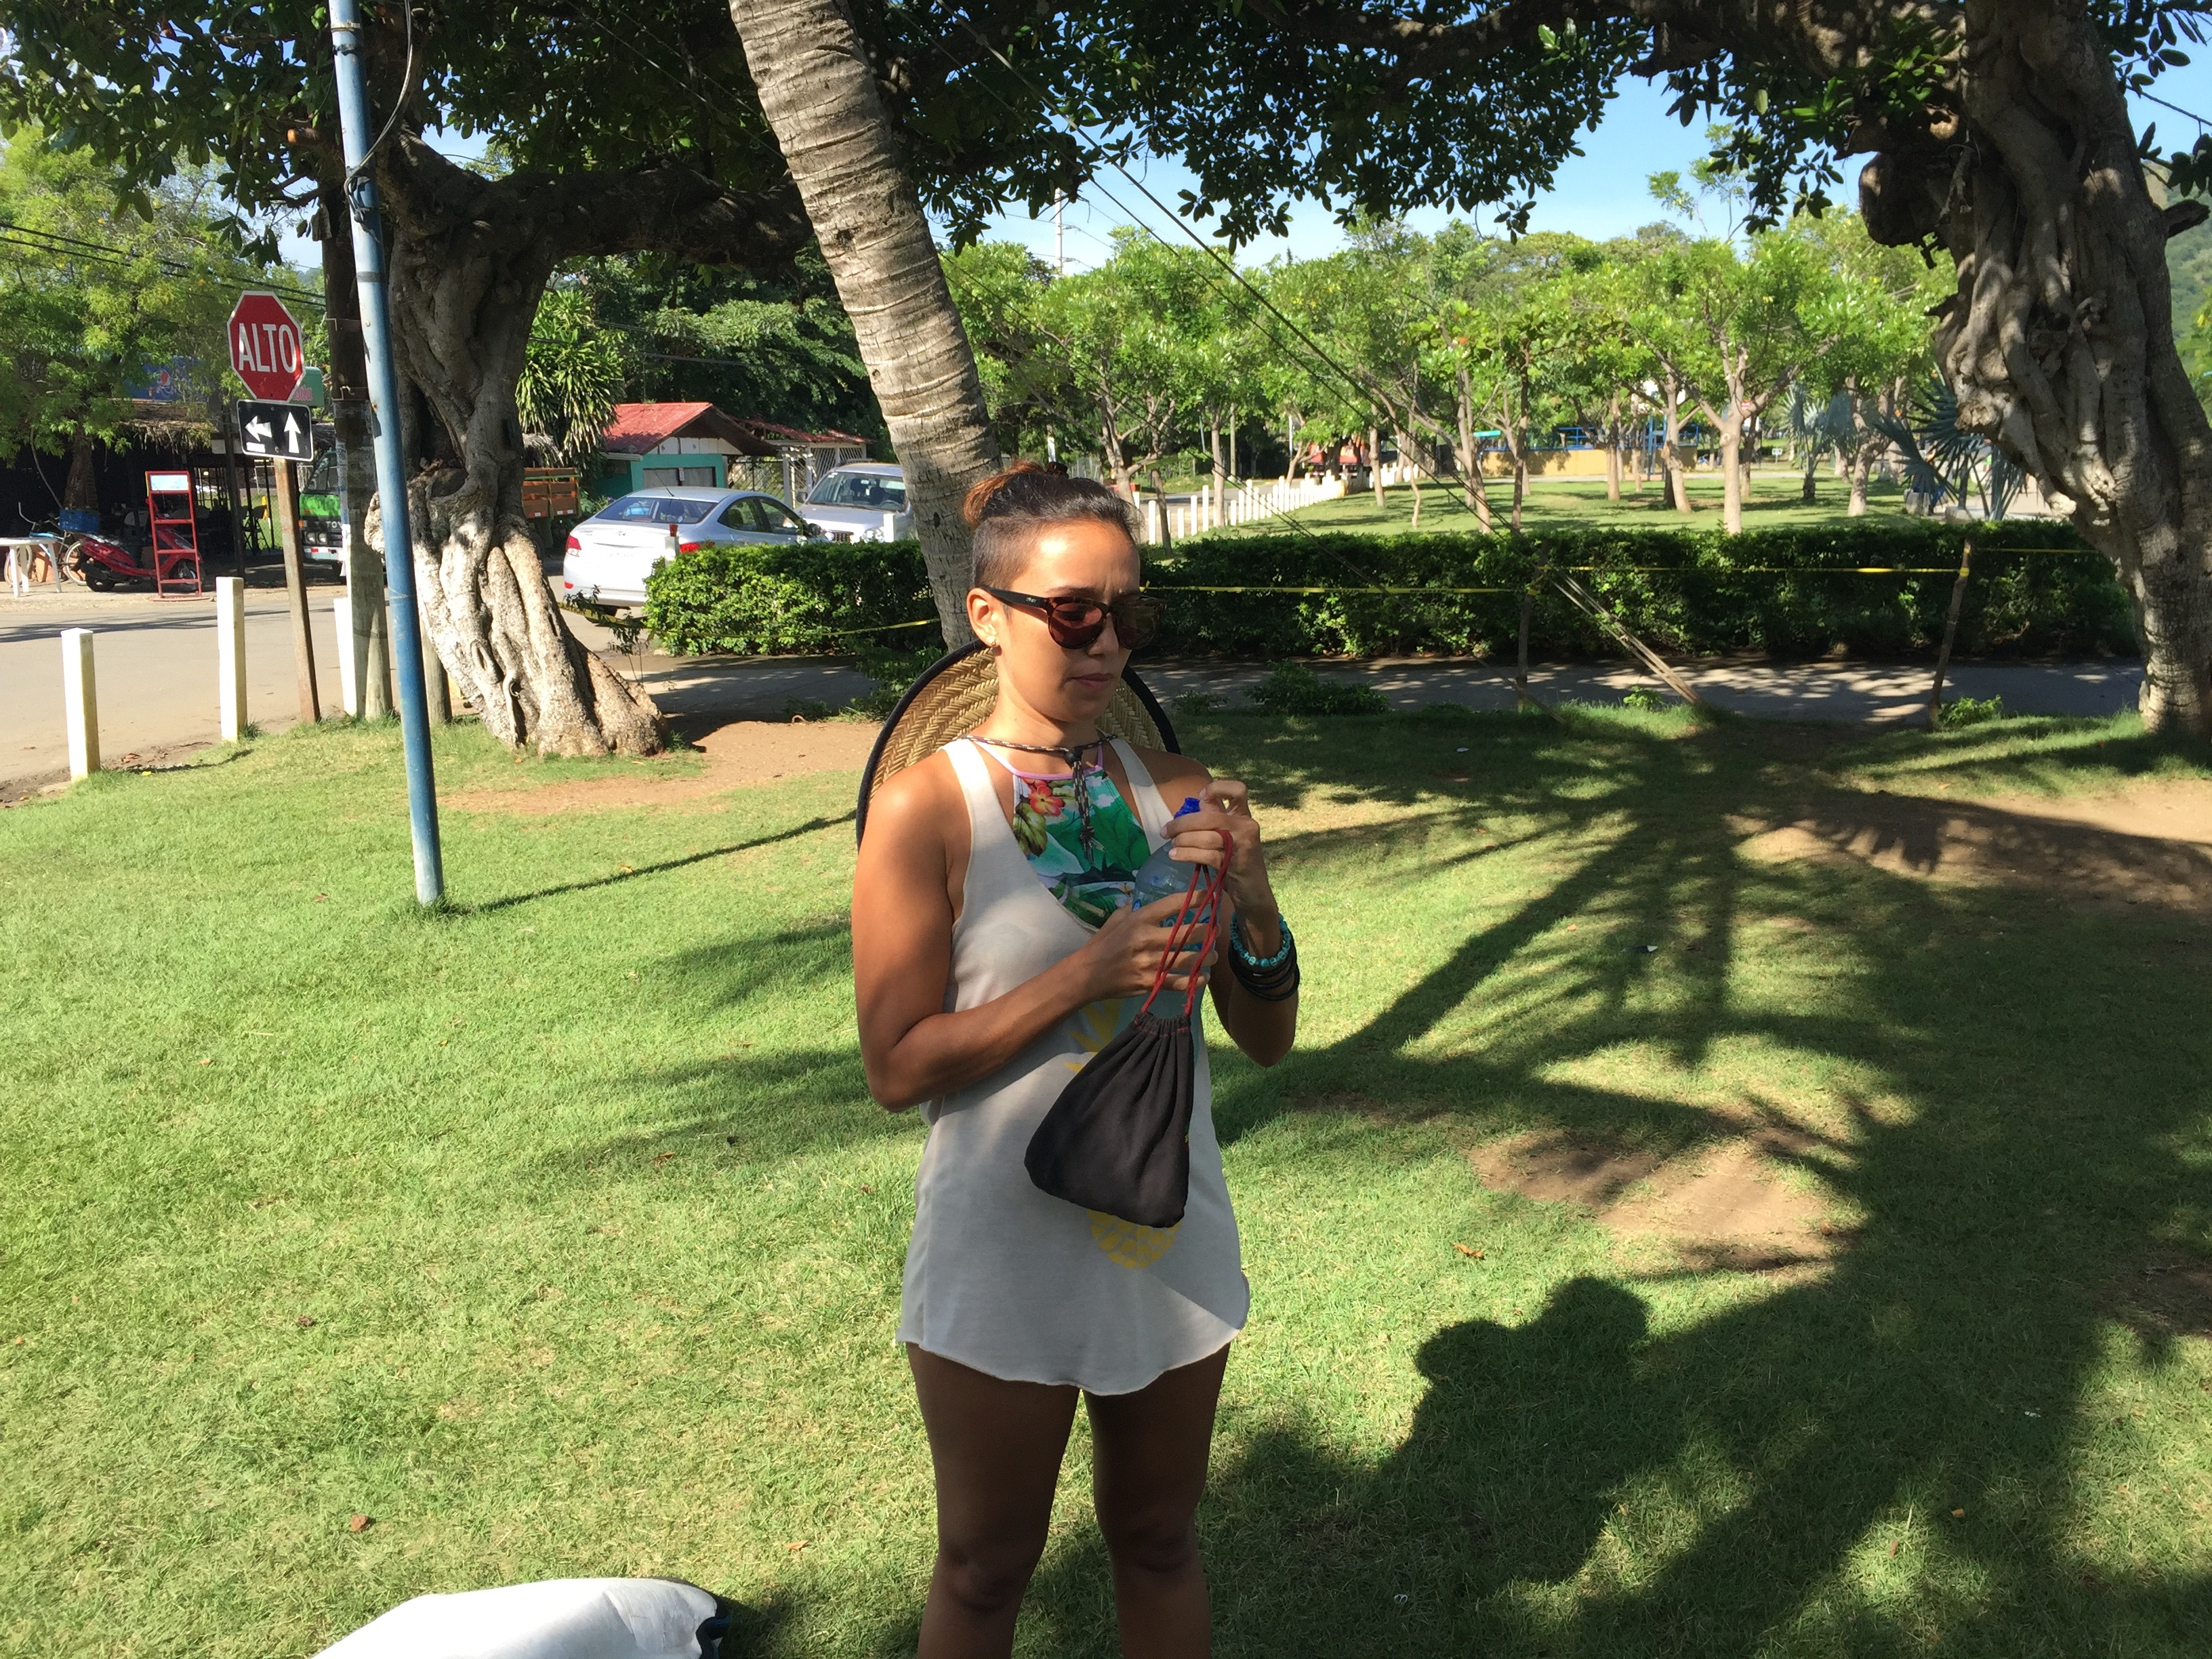 Lois Solano opens a bottle of water on a grass lawn in Costa Rica.